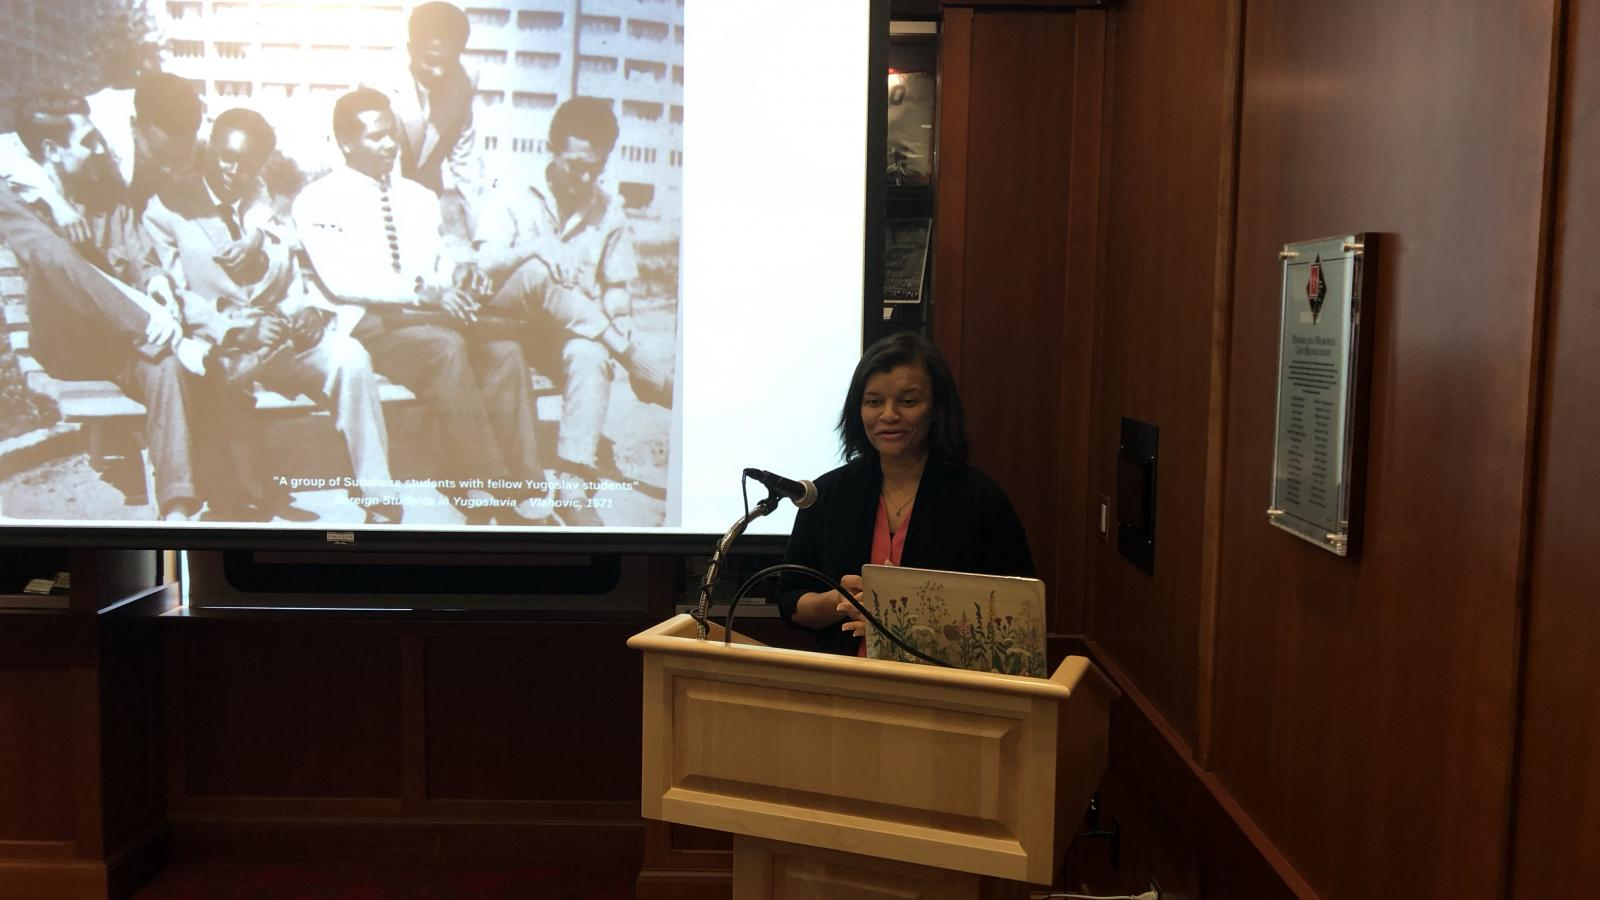 Dr. Sunnie Rucker-Chang Presents the Inaugural Kalbouss Lecture